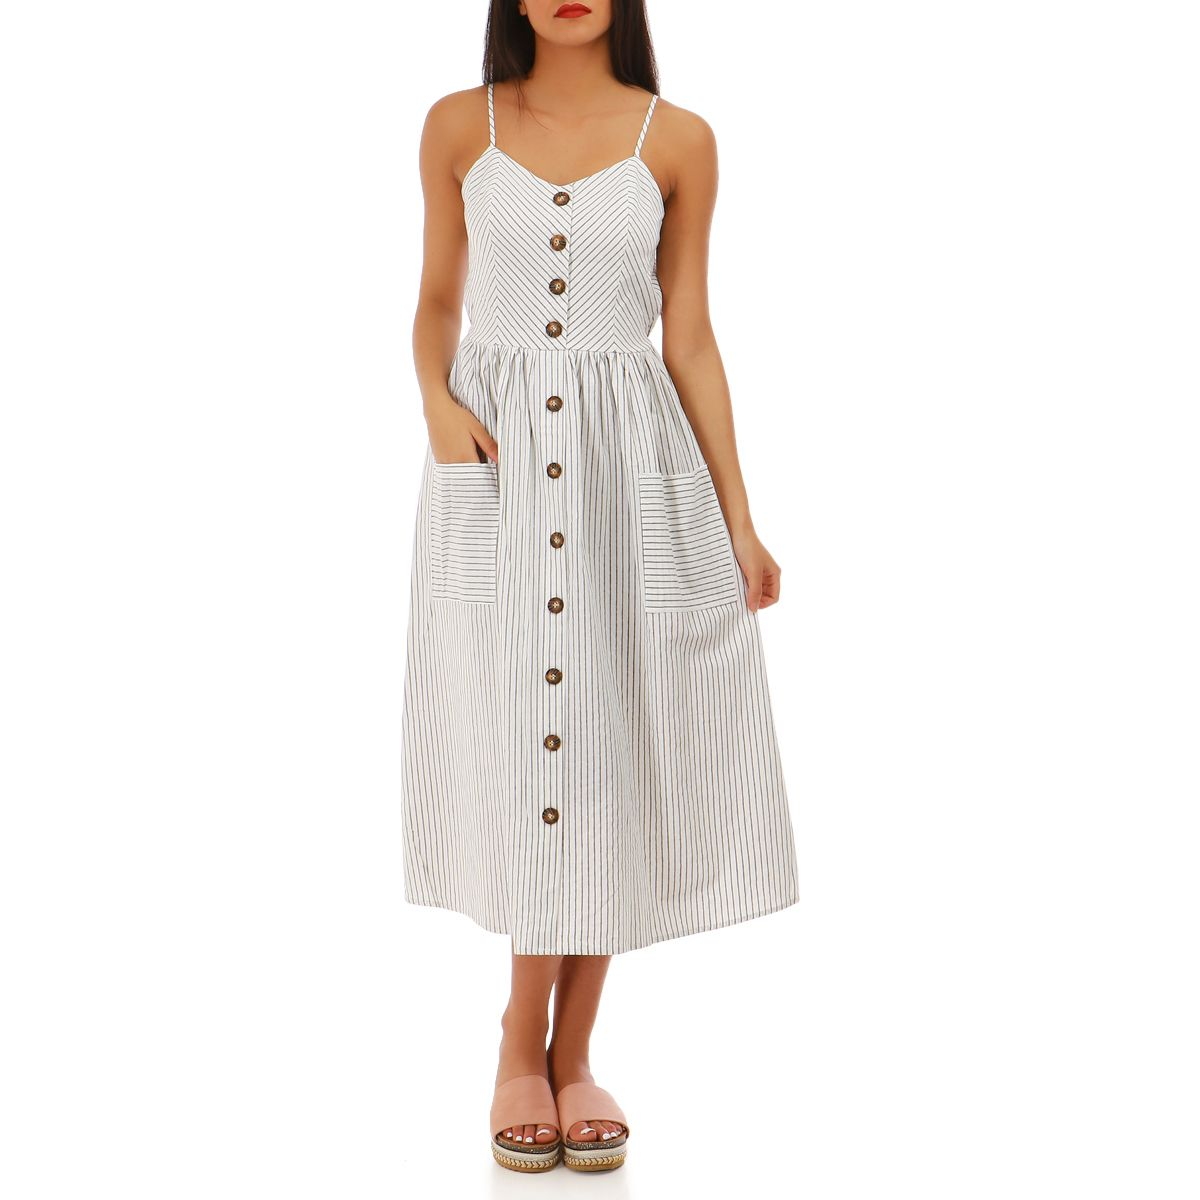 Robe blanche à rayures et boutons